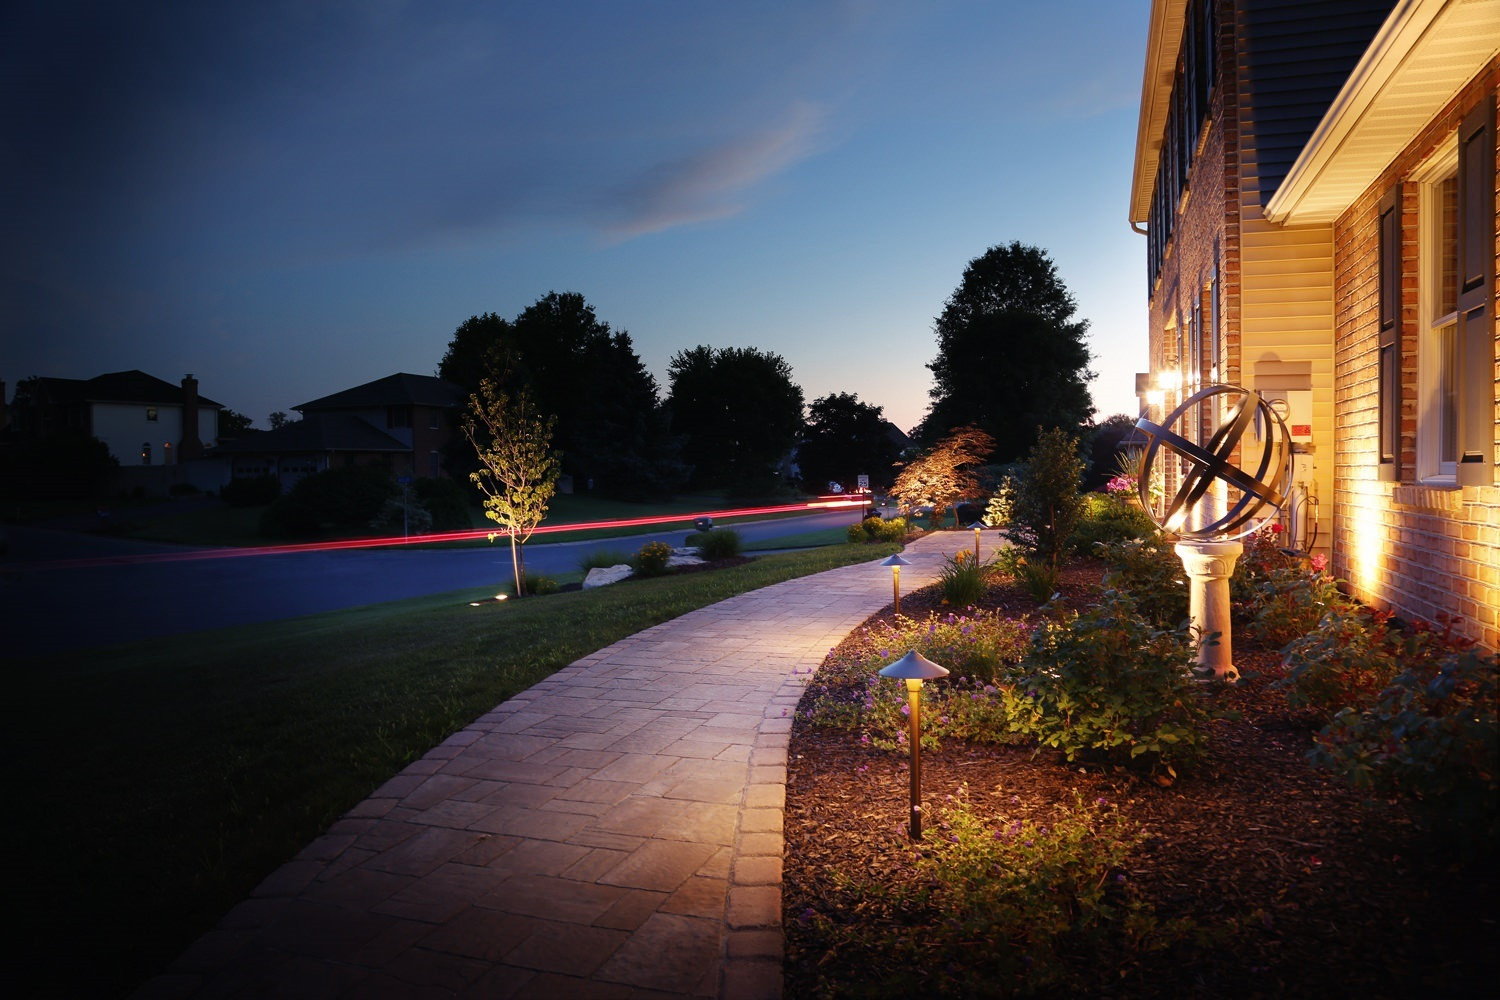 Best ideas about Alliance Outdoor Lighting . Save or Pin Alliance Outdoor Lighting MasterPLAN Outdoor Living Now.